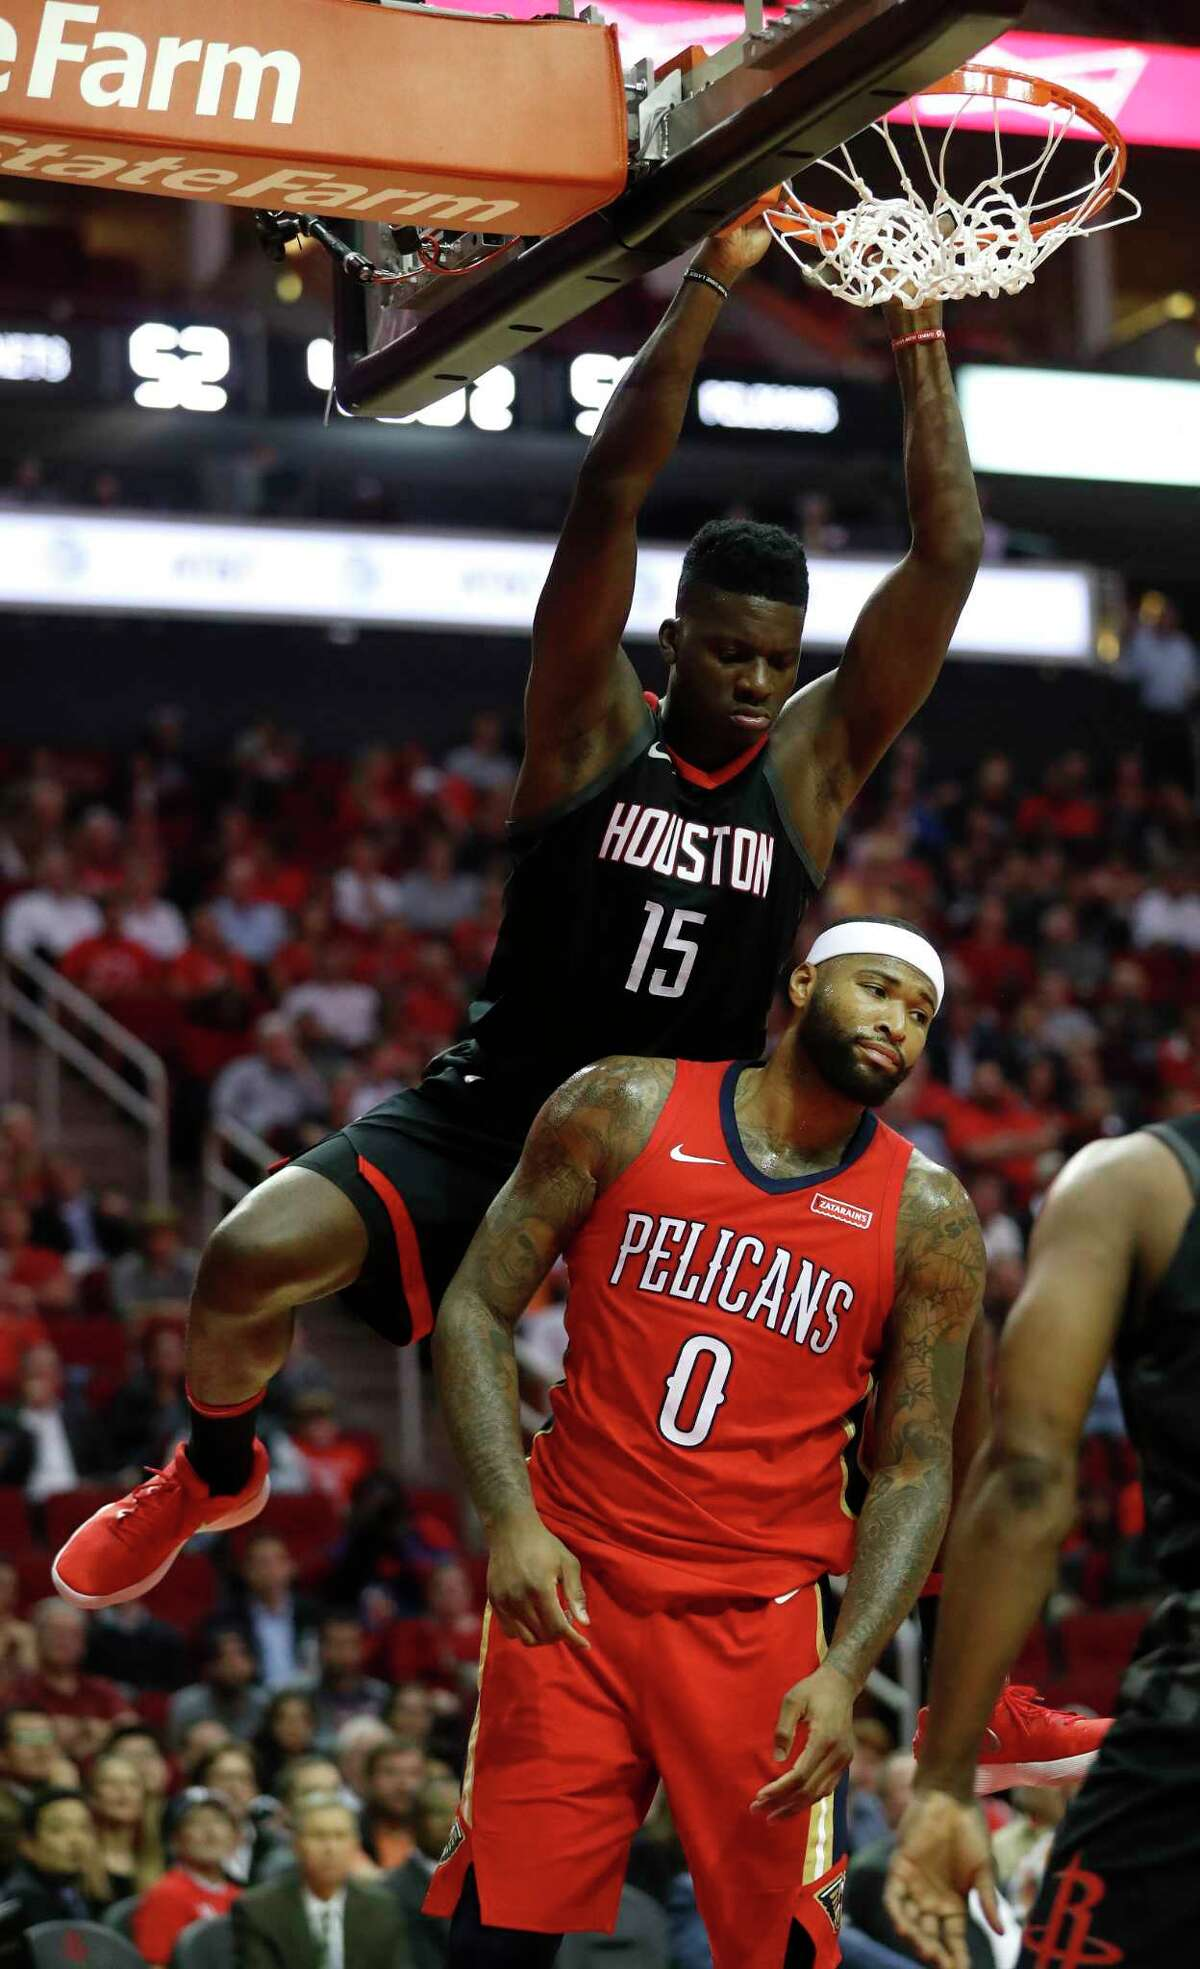 Houston Rockets center Clint Capela (15) dunks the ball over New Orleans Pelicans center DeMarcus Cousins (0) during the first half of an NBA game at Toyota Center, Monday, Dec. 11, 2017, in Houston.